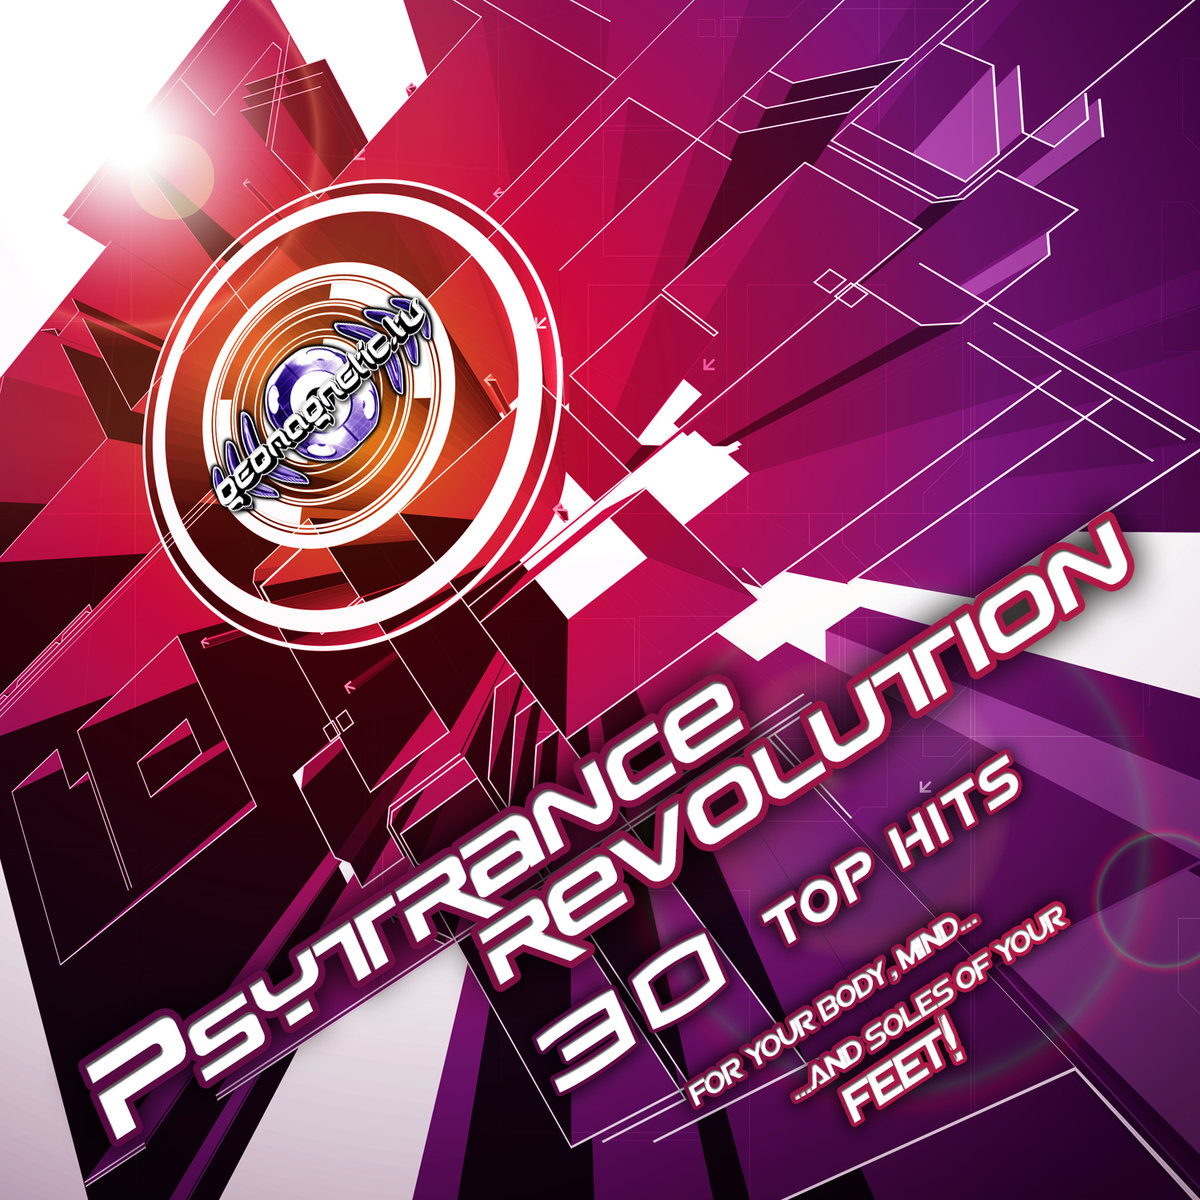 Shalys - Is This Love @ 'Various Artists - Psytrance Revolution (30 Top Hits)' album (electronic, goa)